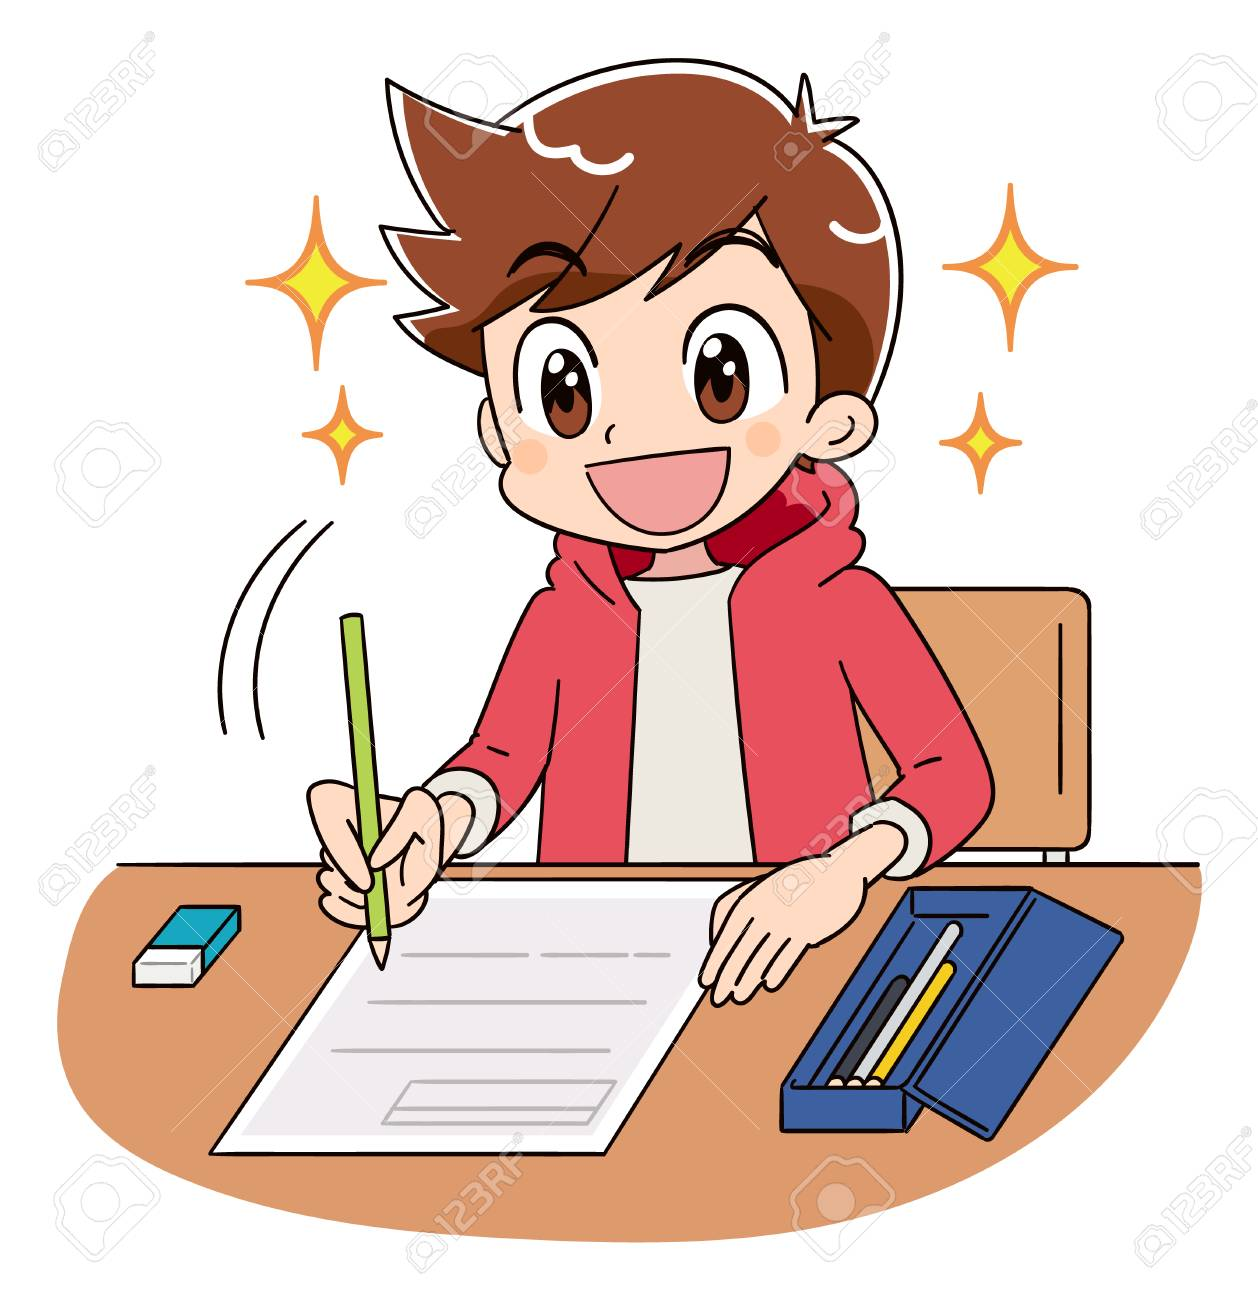 A boy is working on the test. He is shining full of hope with a smile. - 115569840